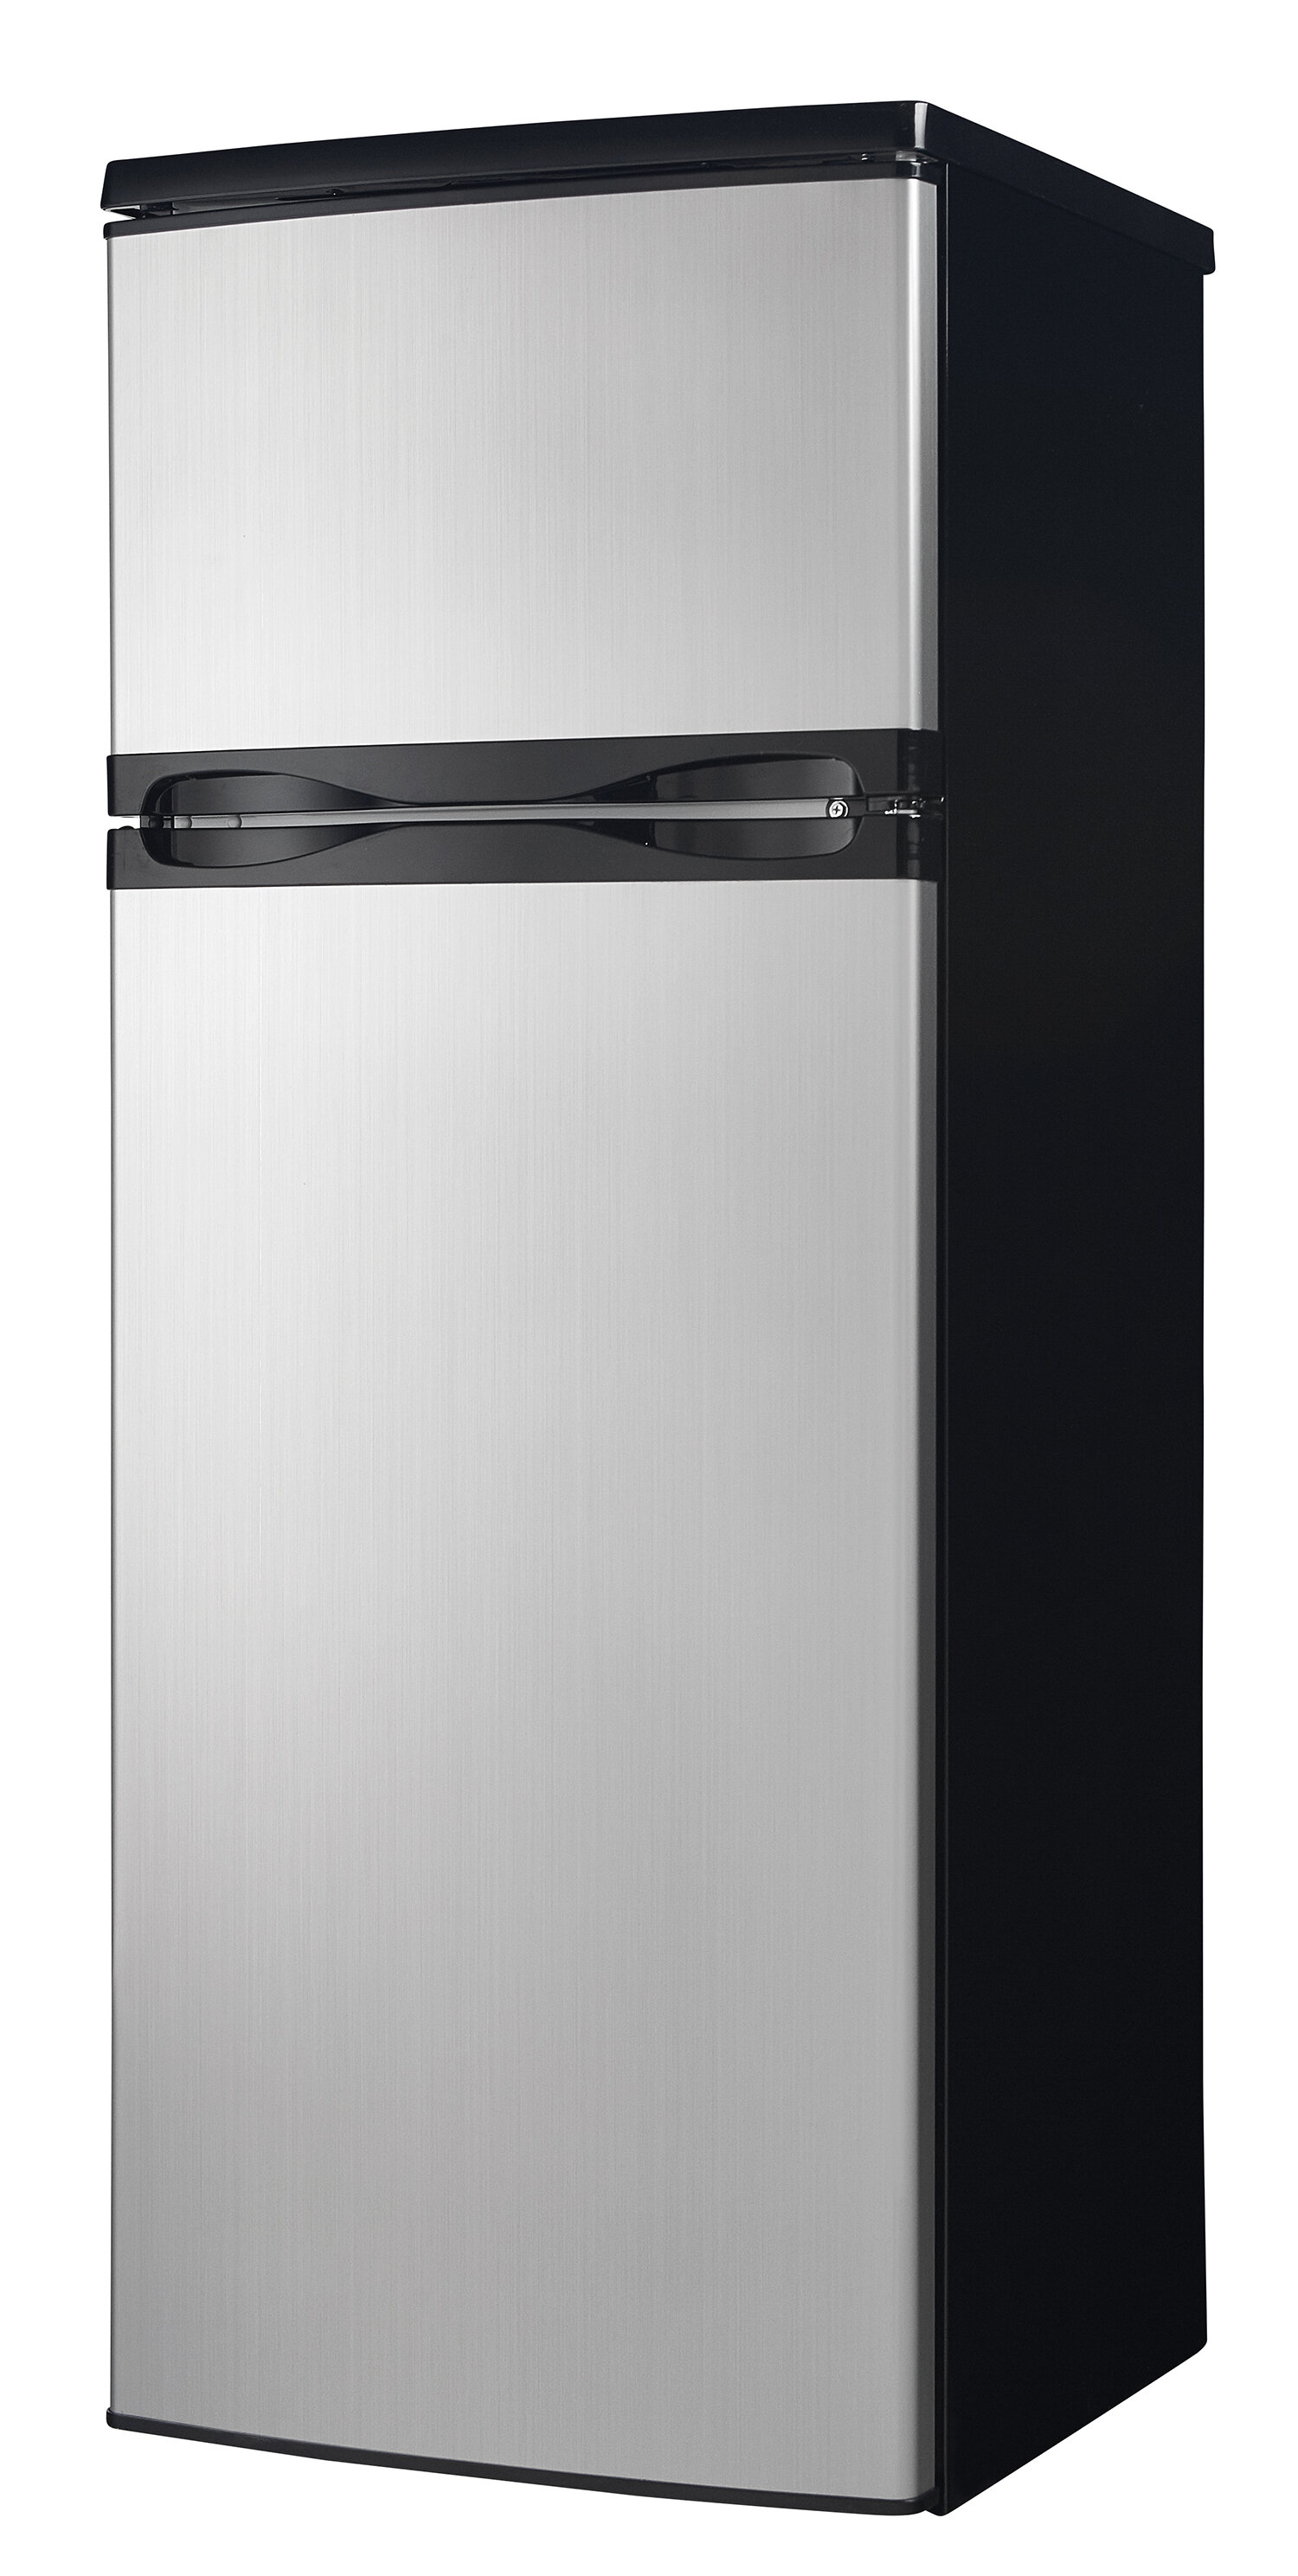 Ordinaire Compact Refrigerator With Freezer U0026 Reviews | Wayfair